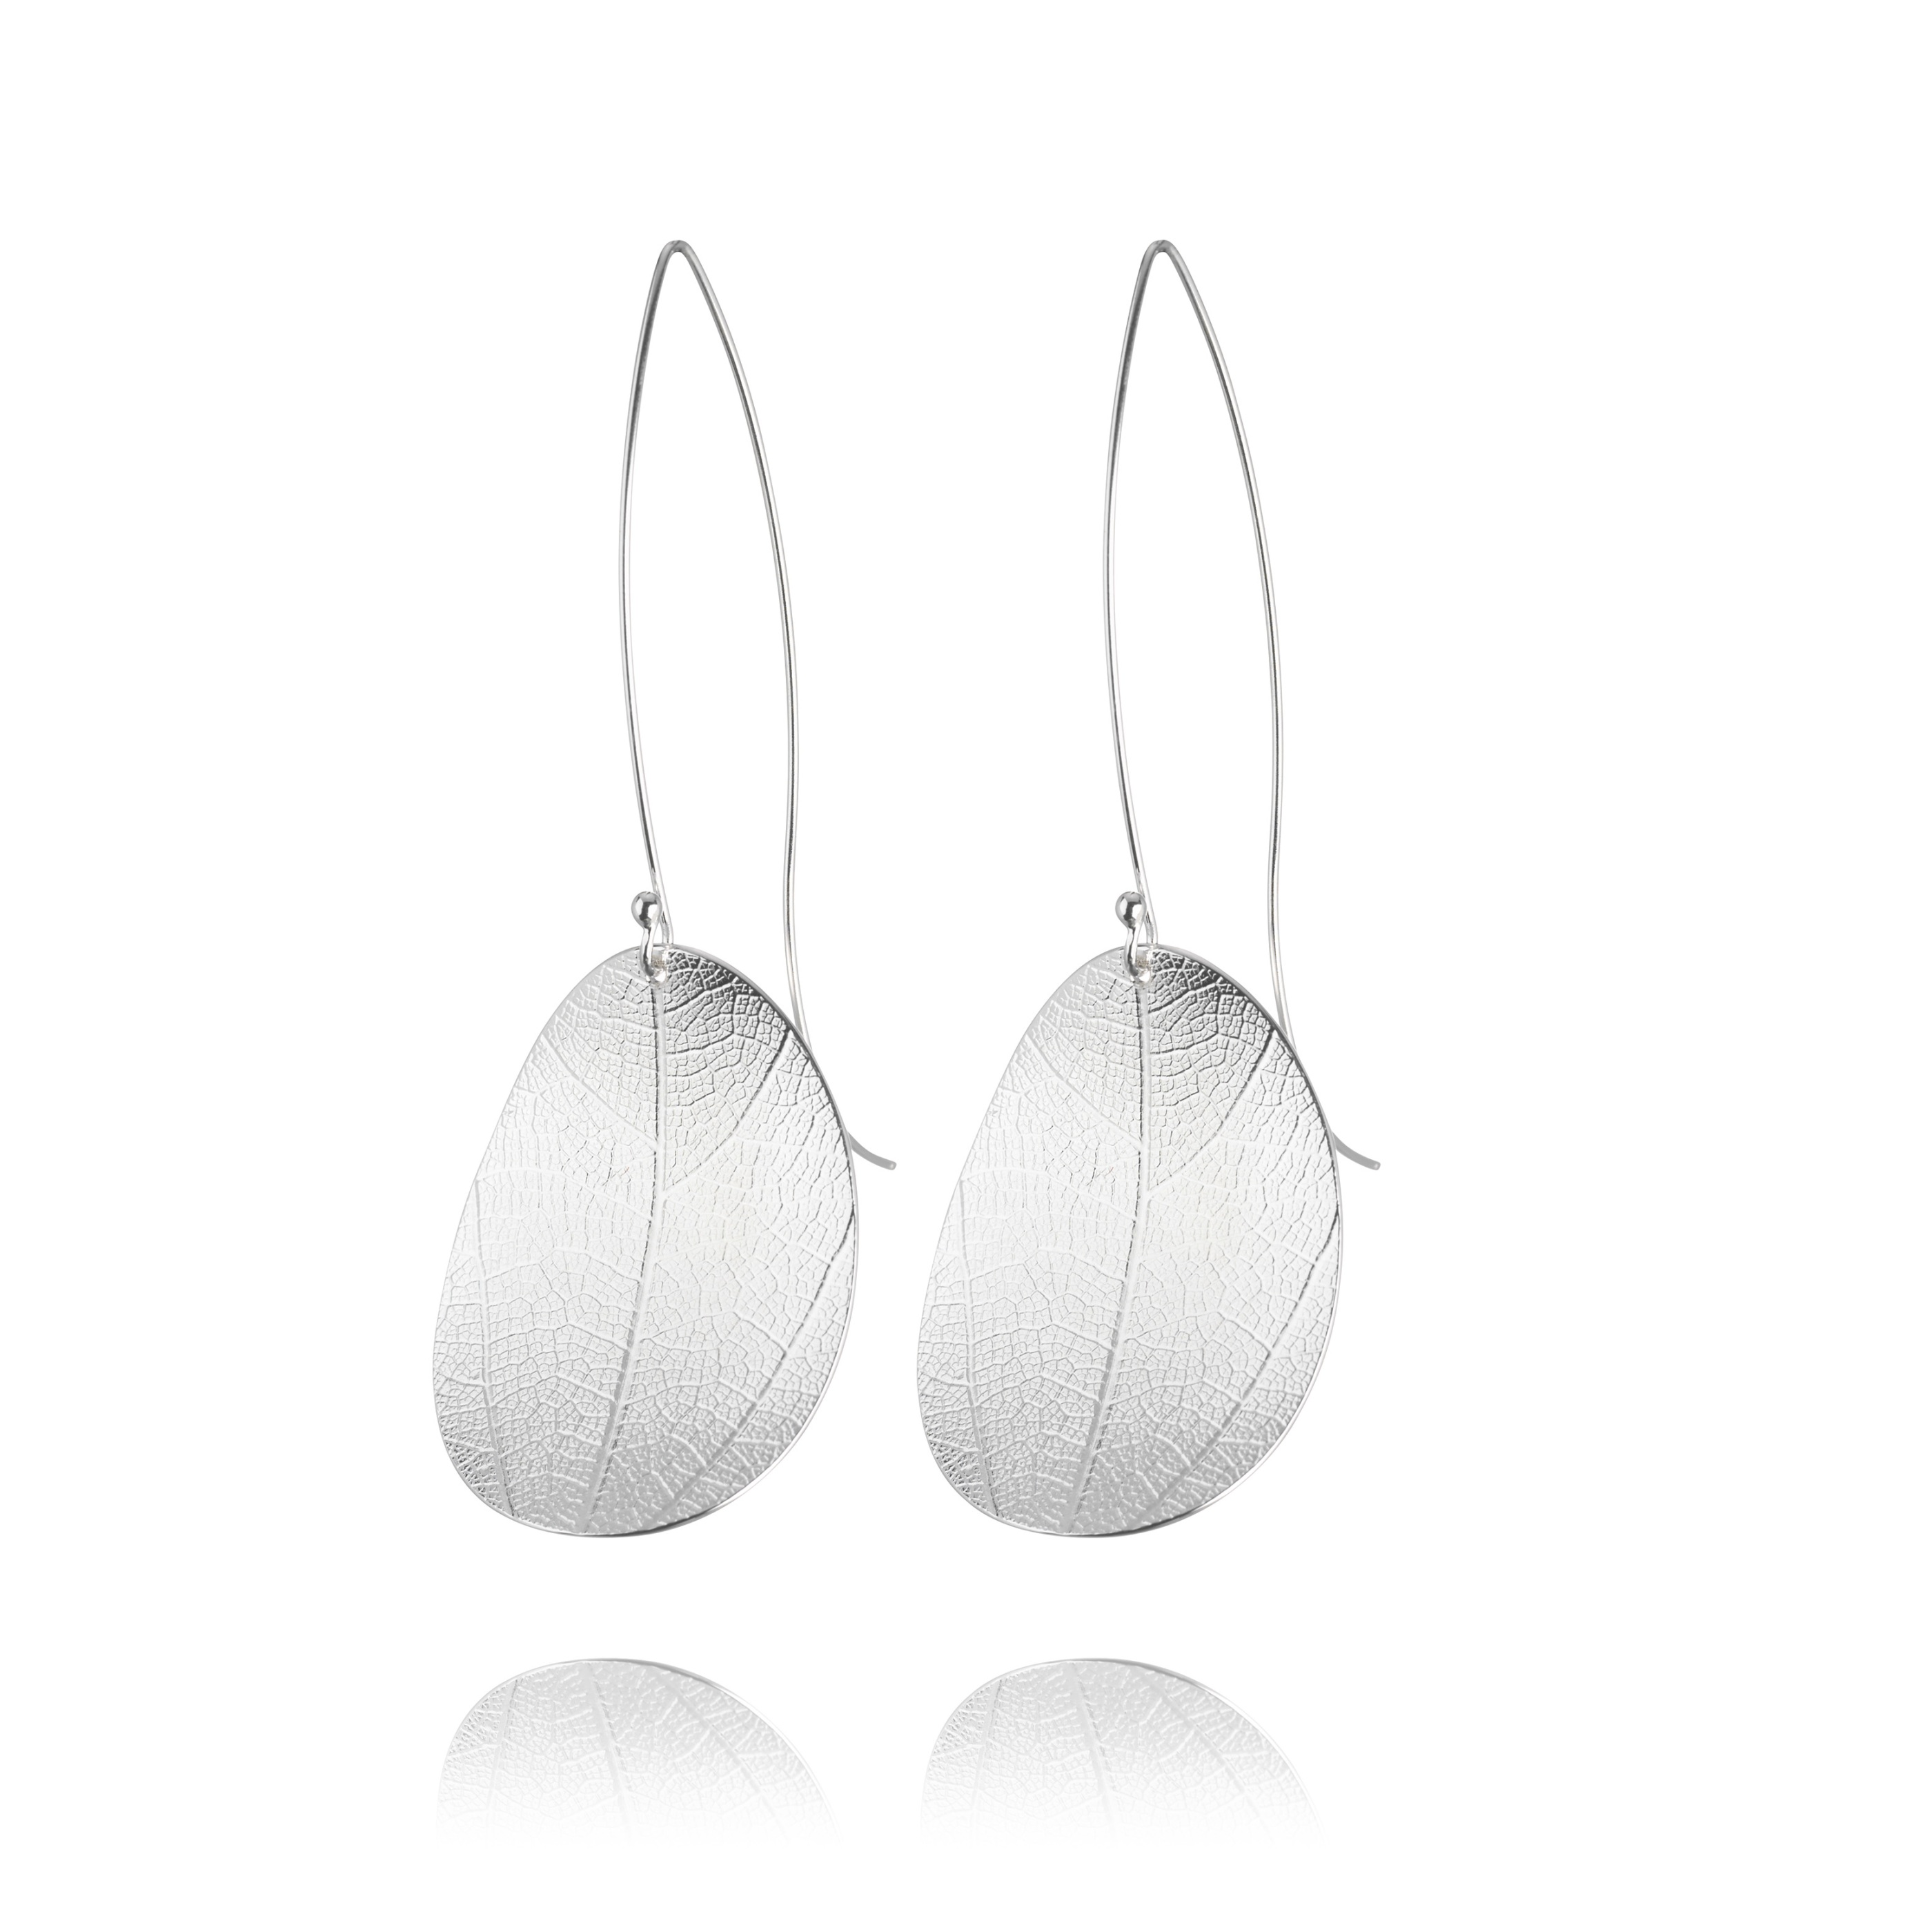 Leaf grande earrings